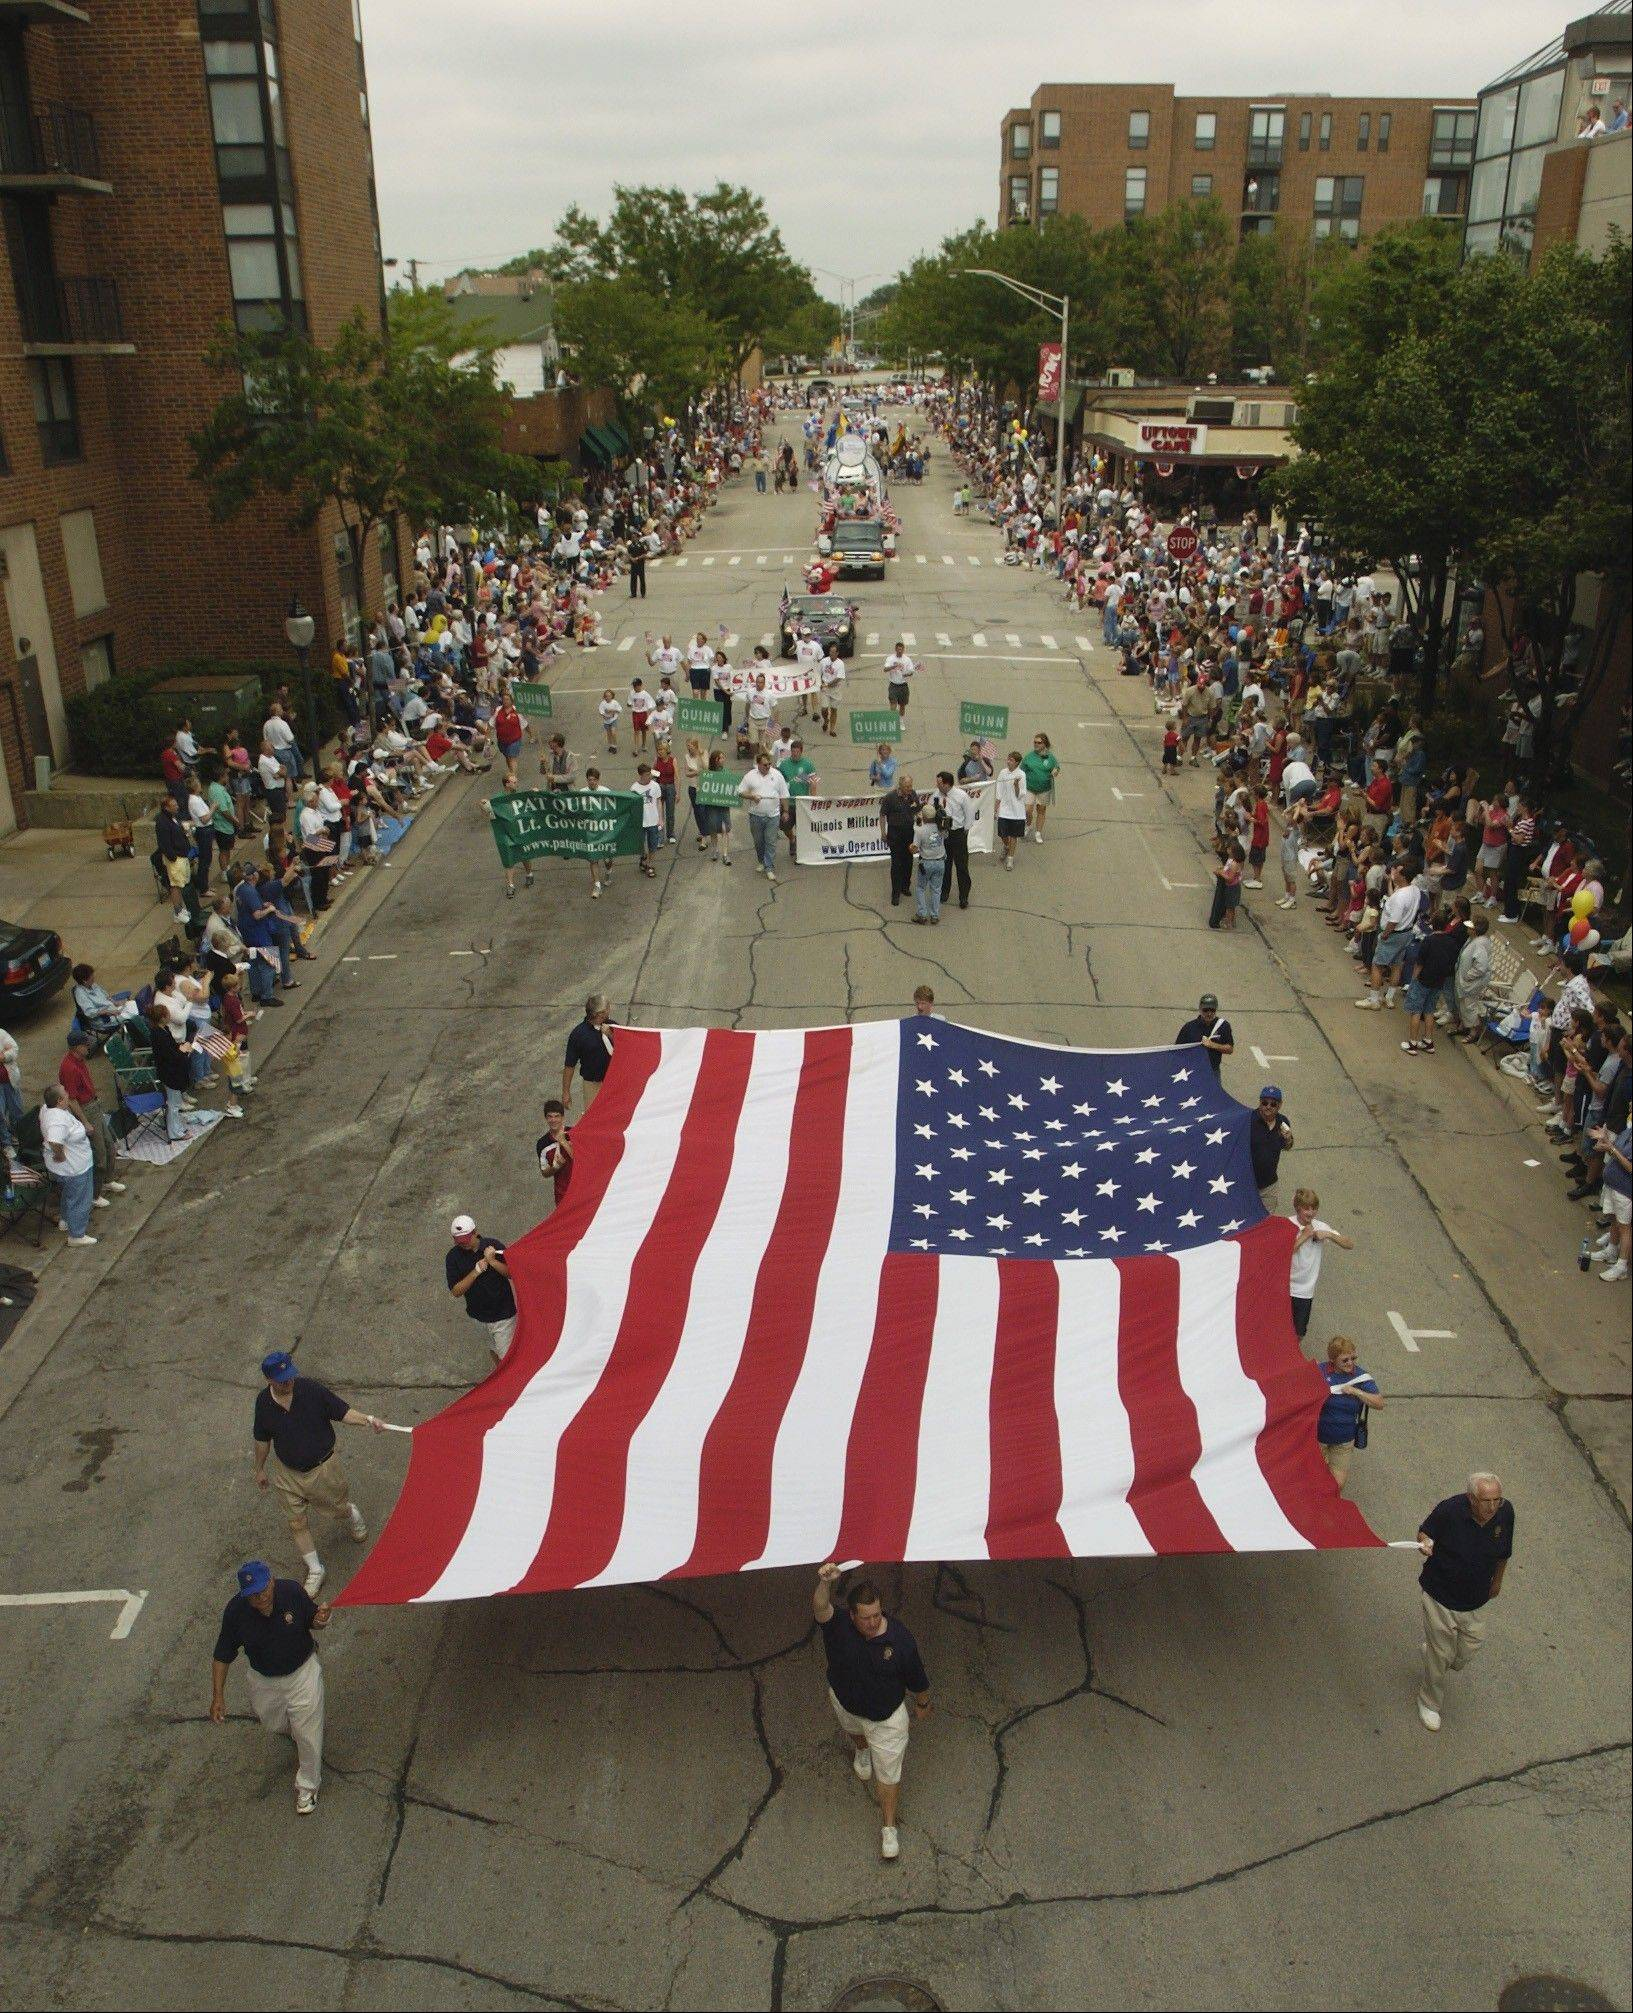 the Lions Club of Arlington Heights marches in a Fourth of July parade with a huge American Flag.